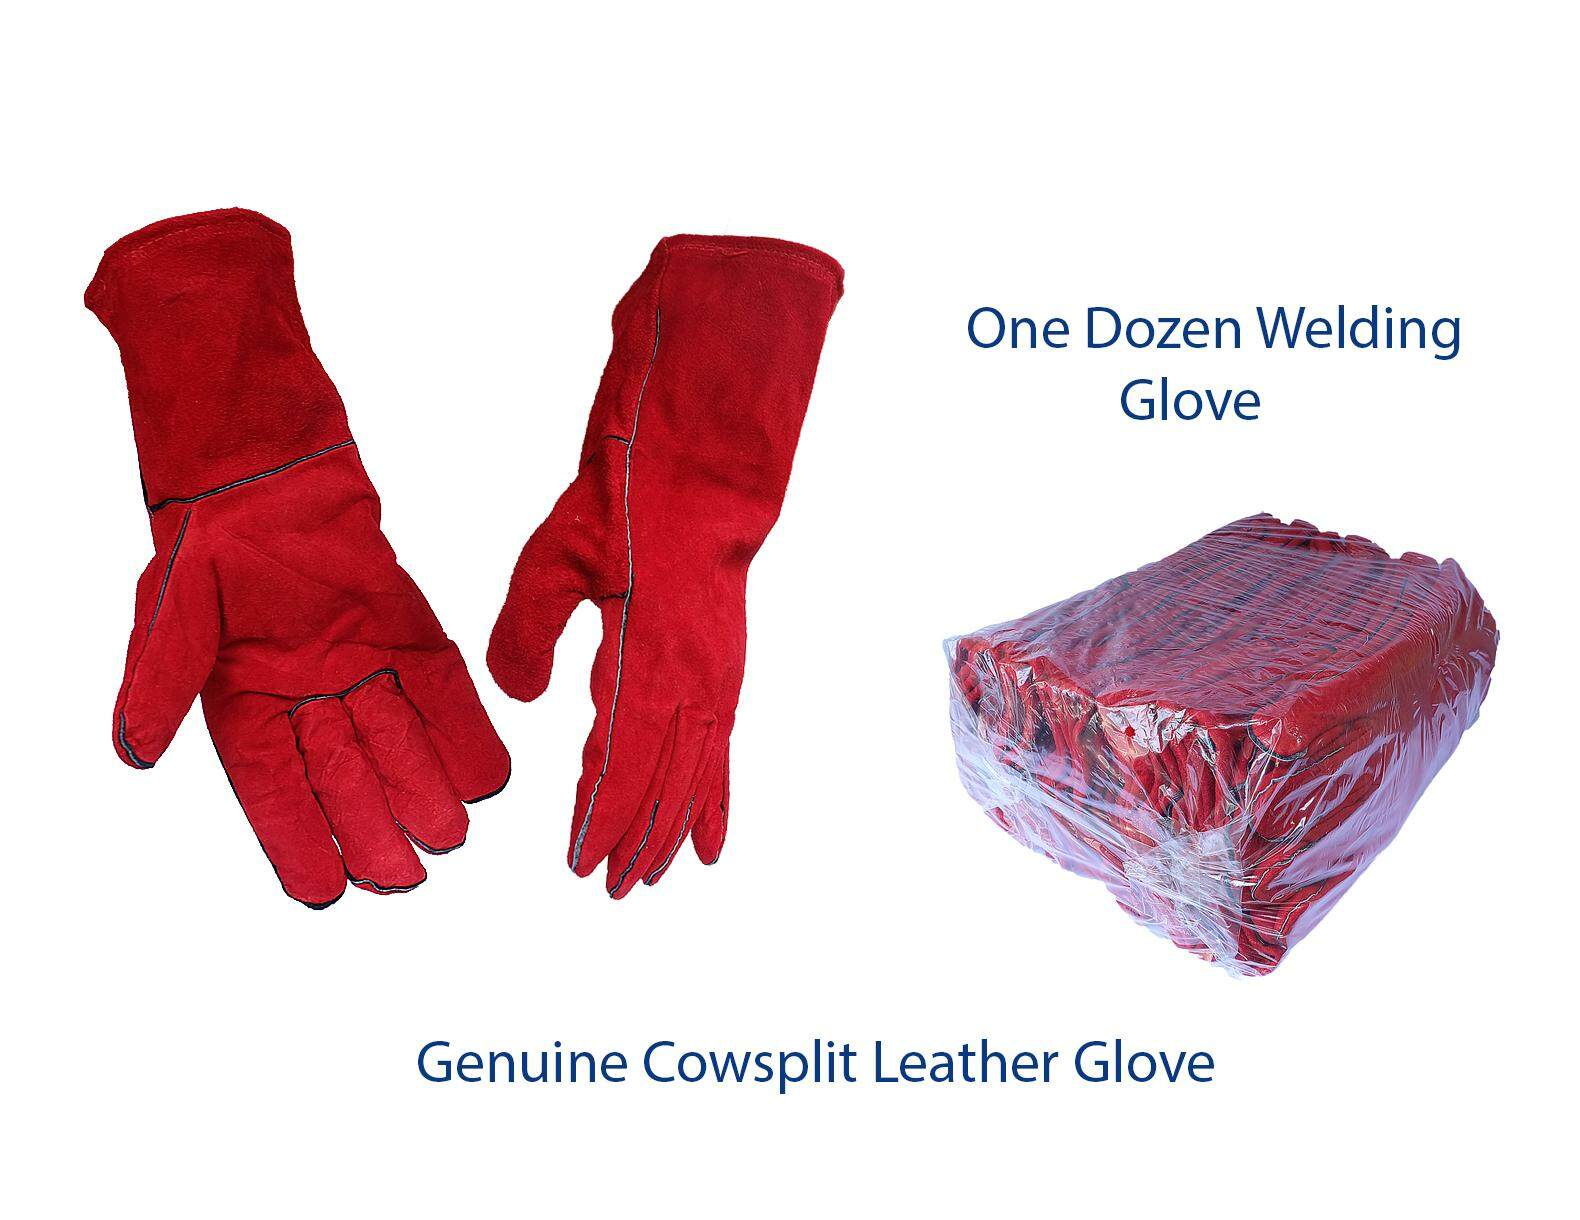 Safety Welding Leather Glove 13 One Dozen for Heat Resistance and Hand Protection